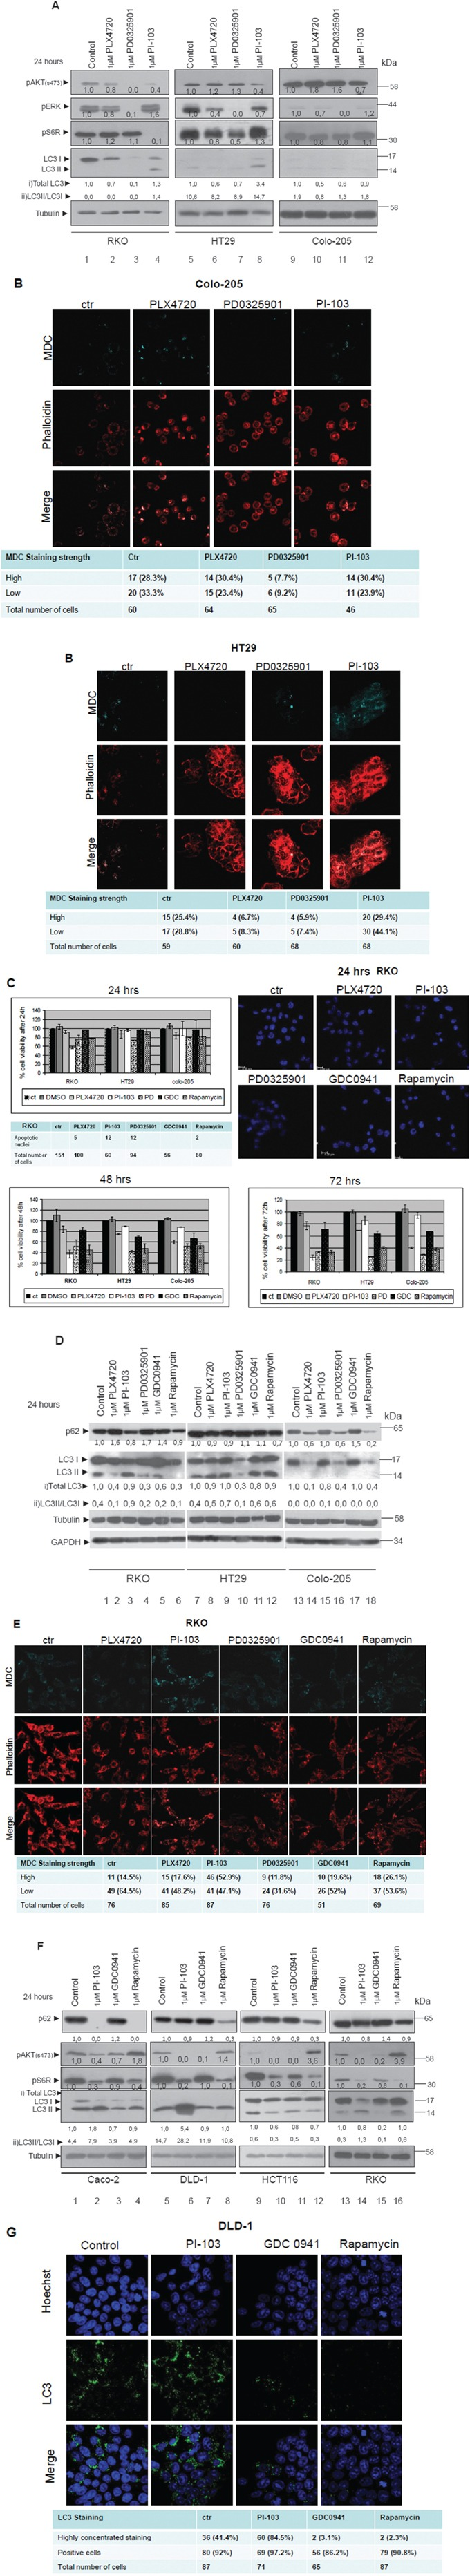 Differential regulation of autophagy by the two signalling pathways MEK/ERK and AKT/MTOR A. Western blot analysis of protein levels of pAKT (ser473), pS6R, pERKs, LC3 and tubulin after 24 h treatment with 1μM BRAFV600E inhibitor PLX4720 (lanes 2, 6 and 10), 1μM MEK inhibitor PD0325901 (lanes 3, 7 and 11) and 1μM of PI3K/MTOR inhibitor PI-103 (lanes 4, 8, 12), in the mutant BRAFV600E cell lines RKO, HT29 and Colo-205 respectively. The quantification of LC3 reflects the whole protein levels as compared to the untreated sample in each cell line (i) and the ratio of LC3II/LC3I in each sample separately (ii). B. The existence of autophagic vacuoles was analysed by 0,1 mM MDC staining under confocal microscope, after treatment of HT29 and Colo-205 cell lines with the kinase inhibitors, described in 3A. C. Cell viability of the mutant BRAFV600E colon cancer cell lines RKO, HT29 and Colo-205 after 24 (upper left panel), 48 (lower left panel) and 72 h (lower right panel) treatments with 1μM of each of the following BRAF/MEK/ERK and AKT/MTOR pathway inhibitors; PLX4720, PI-103, PD0325901 (PD), GDC0941 (GDC) (PI3K inhibitor), Rapamycin (MTOR inhibitor). Cells were also stained with Hoechst after 24h treatment in order to assess the number of apoptotic nuclei (upper right panel). D. Western blot analysis of LC3 and p62 protein levels in the mutant BRAFV600E colon cancer cell lines RKO, HT29 and Colo-205 respectively after 24 h treatment with 1μM of each of the following BRAF/MEK/ERK and AKT/MTOR pathway inhibitors: PLX4720 (2, 8, 14), PI-103 (3, 9, 15), PD0325901 (4, 10, 16), GDC0941 (5, 11, 17), Rapamycin (6, 12, 18). The quantification of LC3 reflects total protein levels as compared to the untreated sample in each cell line (i) and the ratio of LC3II/LC3I in each sample separately (ii). E. Confocal microscope images of two-dimensional culture in RKO cell line after treatment with 1μM of each of the following BRAF/MEK/ERK and PI3K/MTOR pathway inhibitors; PLX4720 (2 nd column), PI-103 (3 rd column), PD0325901(4 th column), GDC0941(5 th column), Rapamycin (6th column) as compared to control untreated cells (1st column). Cells were stained with MDC (upper row, light blue), phalloidin (middle row, red), and merged staining (lower row), in order to detect autophagic vacuoles (MDC) and cell number distribution. The number of cells stained with MDC (high-low) was recorded. The total number of cells by phalloidin staining and the number of MDC stained cells from five different confocal images for each sample was recorded. F. Western blot analysis of protein levels of pAKT(ser473), pS6R, LC3, p62 and tubulin after 24 h treatment with 1μM of PI-103 (lanes 2, 6, 10, 14), 1μM GDC0941 (lanes 3, 7, 11, 15) and 1μM Rapamycin (lanes 4, 8, 12, 16) in Caco-2, DLD-1, HCT116 and RKO cell lines. Protein levels were normalized against tubulin. The quantification of LC3 reflects the total protein levels as compared to the untreated sample in each cell line (i) and the ratio of LC3II/LC3I in each sample separately (ii). G. Confocal microscope images of two-dimensional culture in DLD-1 cell line after treatment with 1μM of each of the following PI3K/MTOR pathway inhibitors; PI-103 (2 nd column), GDC0941(3 rd column) and Rapamycin (4th column) as compared to control untreated cells (1st column). Cells were stained with Hoechst (upper row, blue), LC3 antibody (middle row, green) and merged (lower row). The total number of cells by Hoechst staining and the number of LC-3 stained cells from five different confocal images for each sample was recorded.